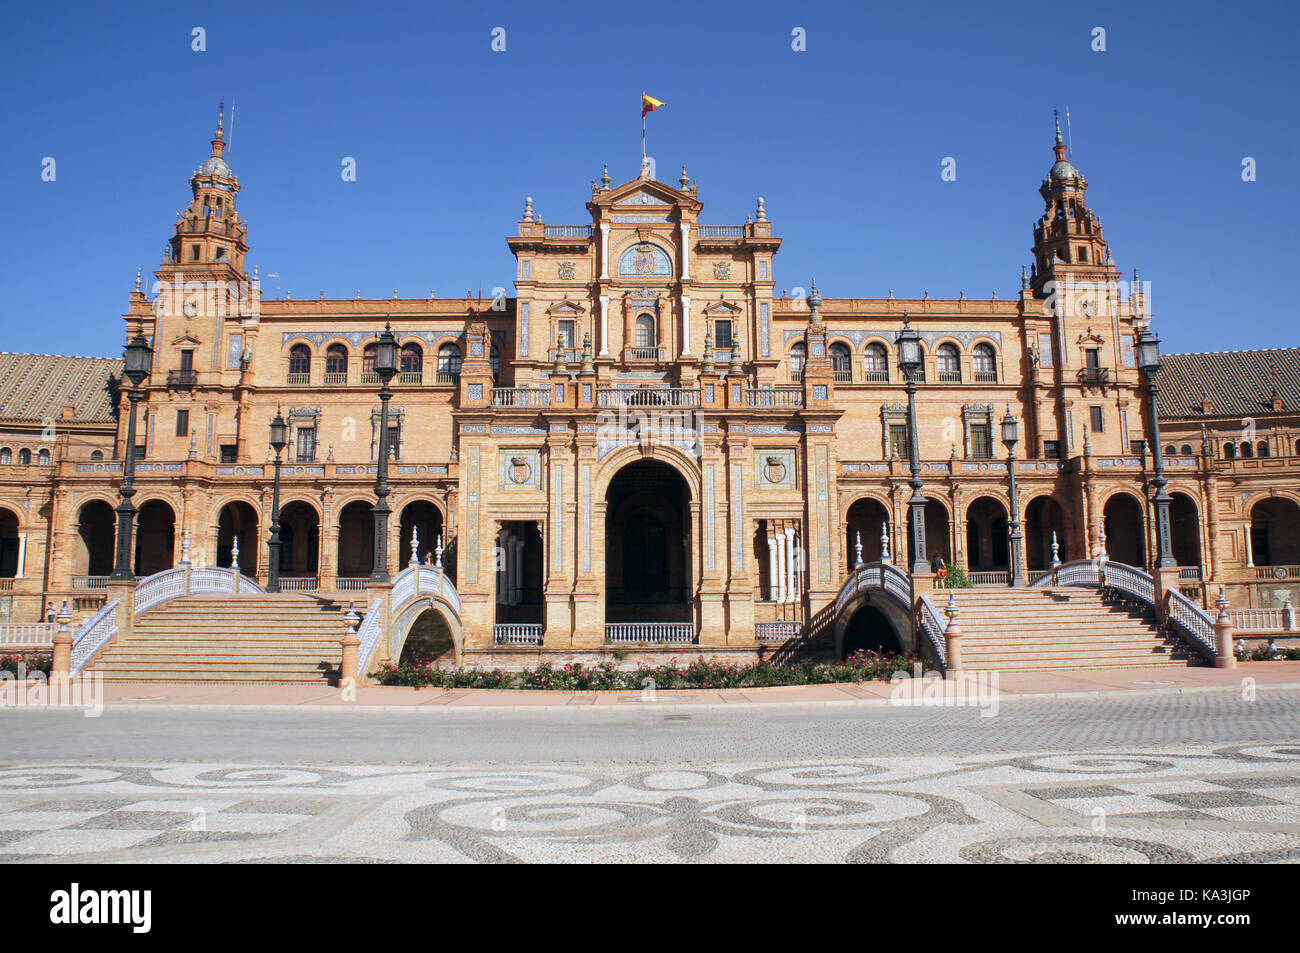 Plaza de Espana in Seville, Spain with bridges over the canal. Example of Moorish and Renaissance revival. - Stock Image